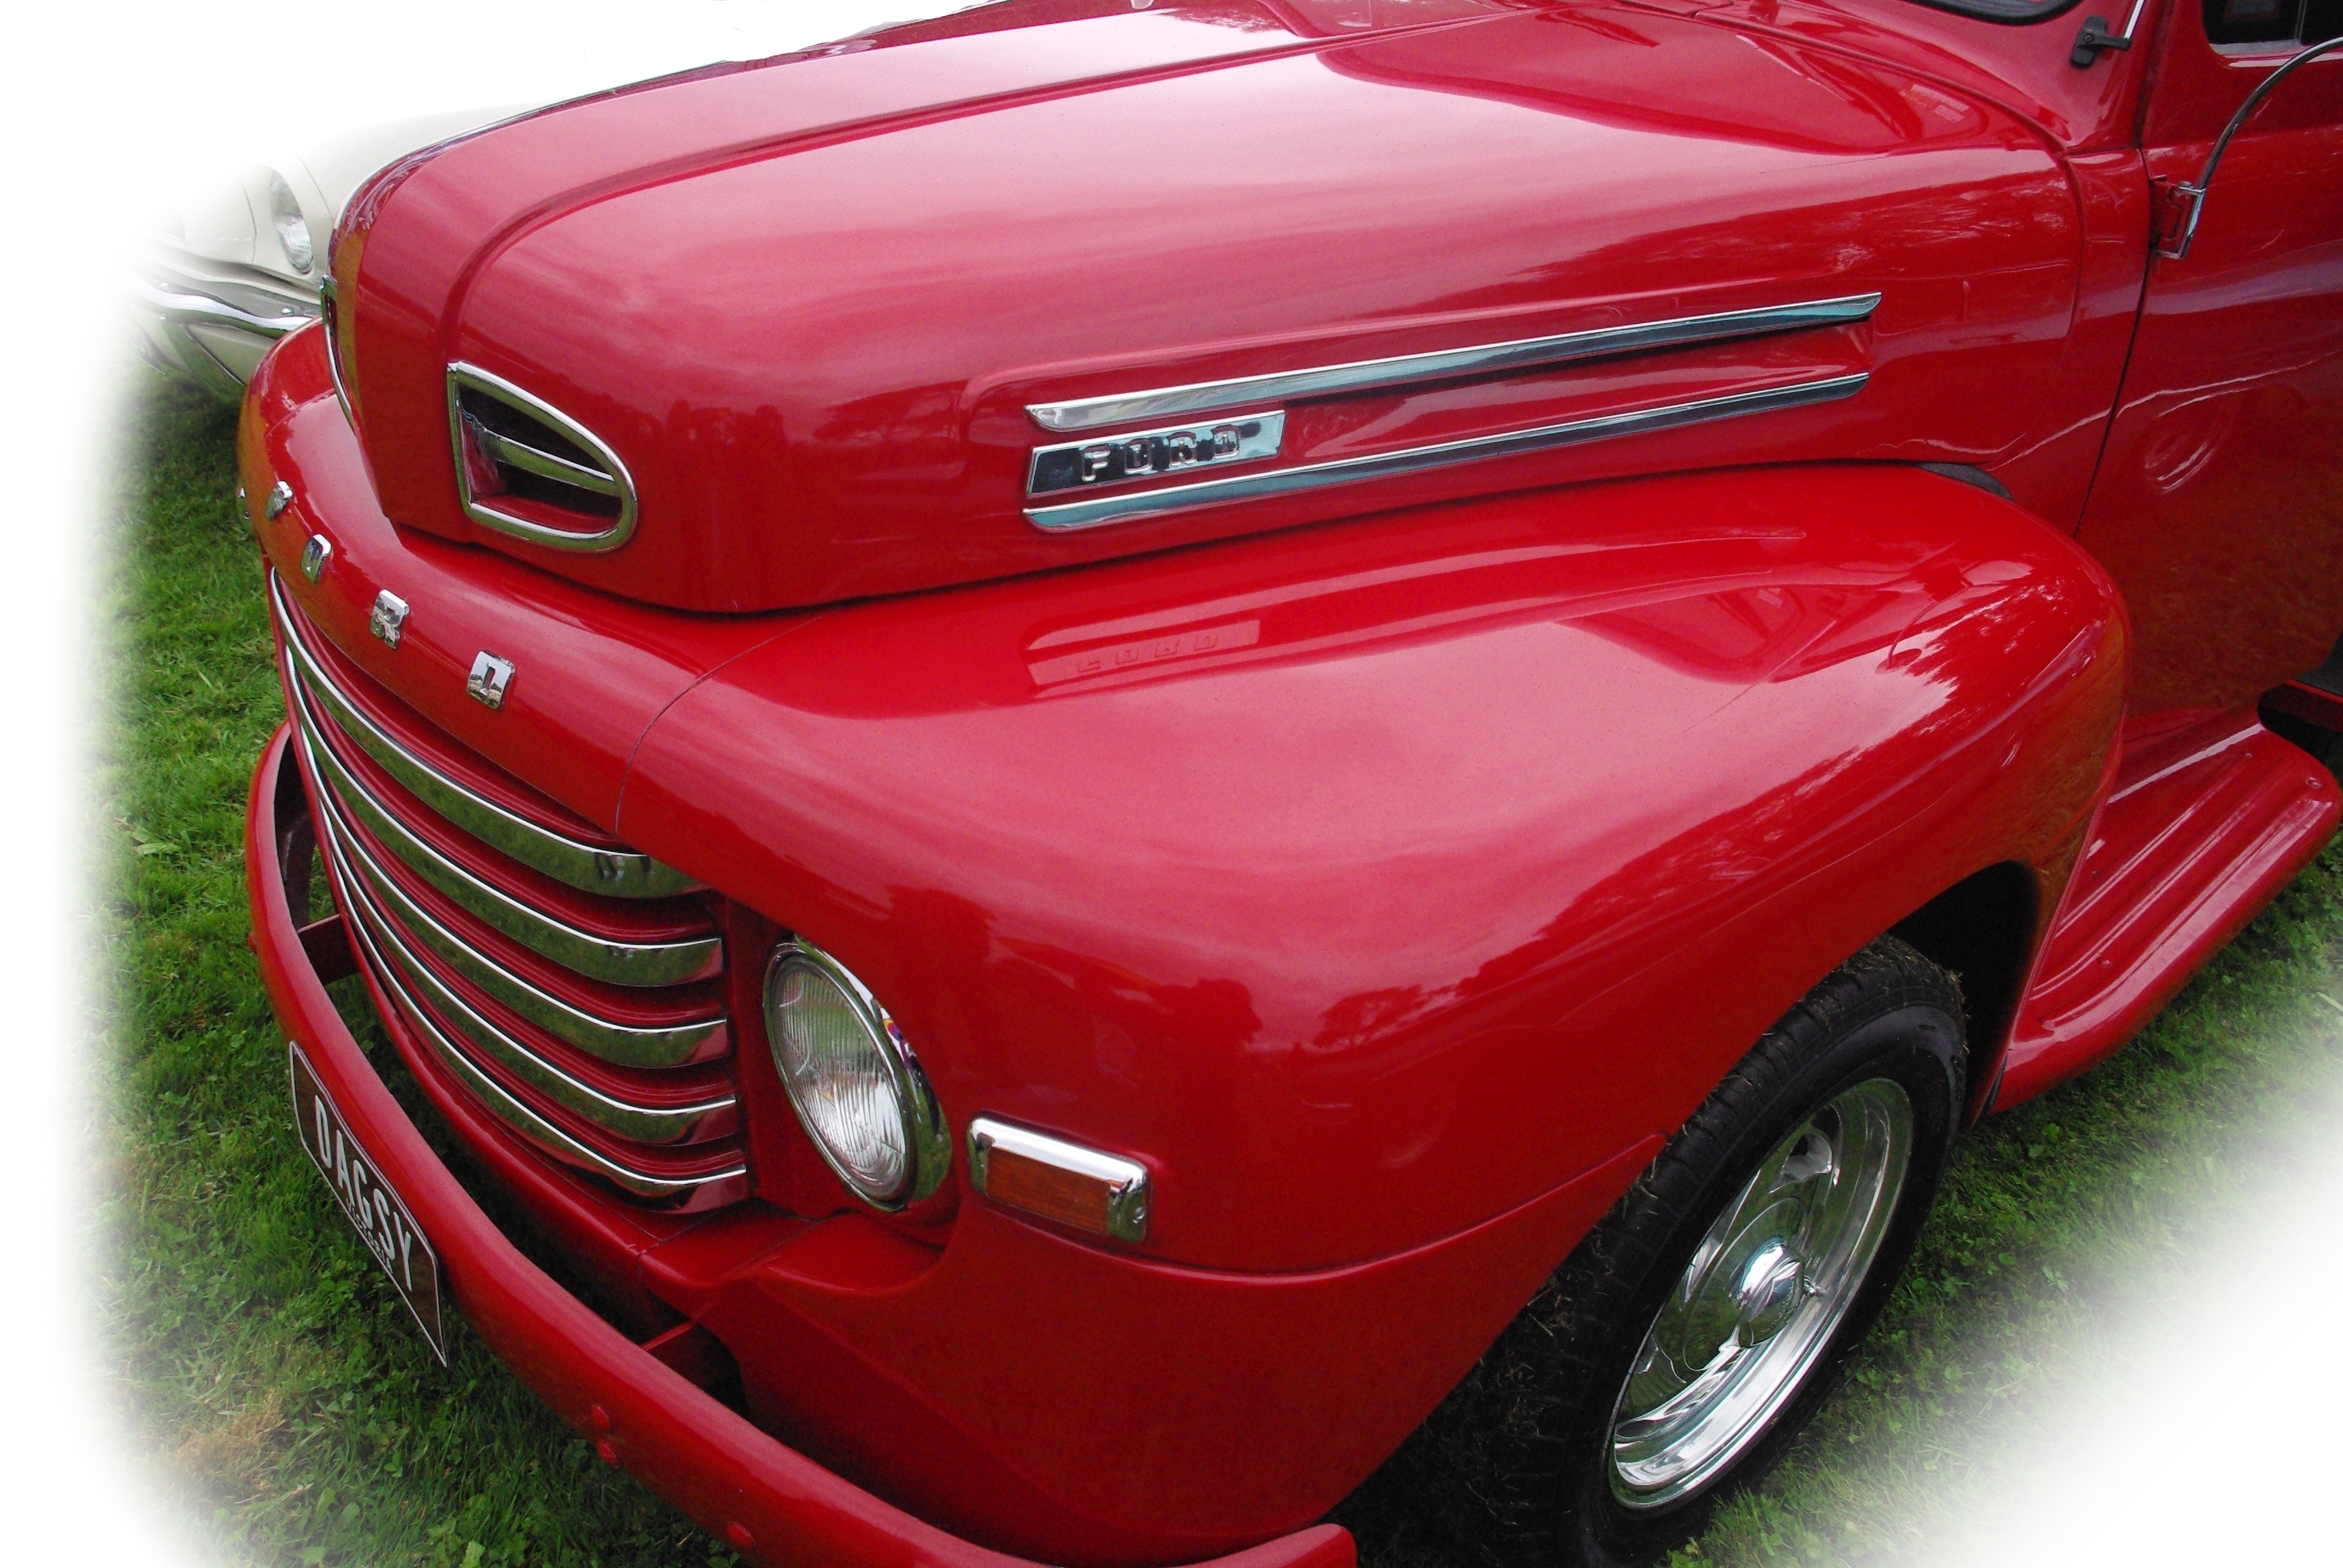 Red Ford, Automobile, Bonnet, Car, Ford, HQ Photo